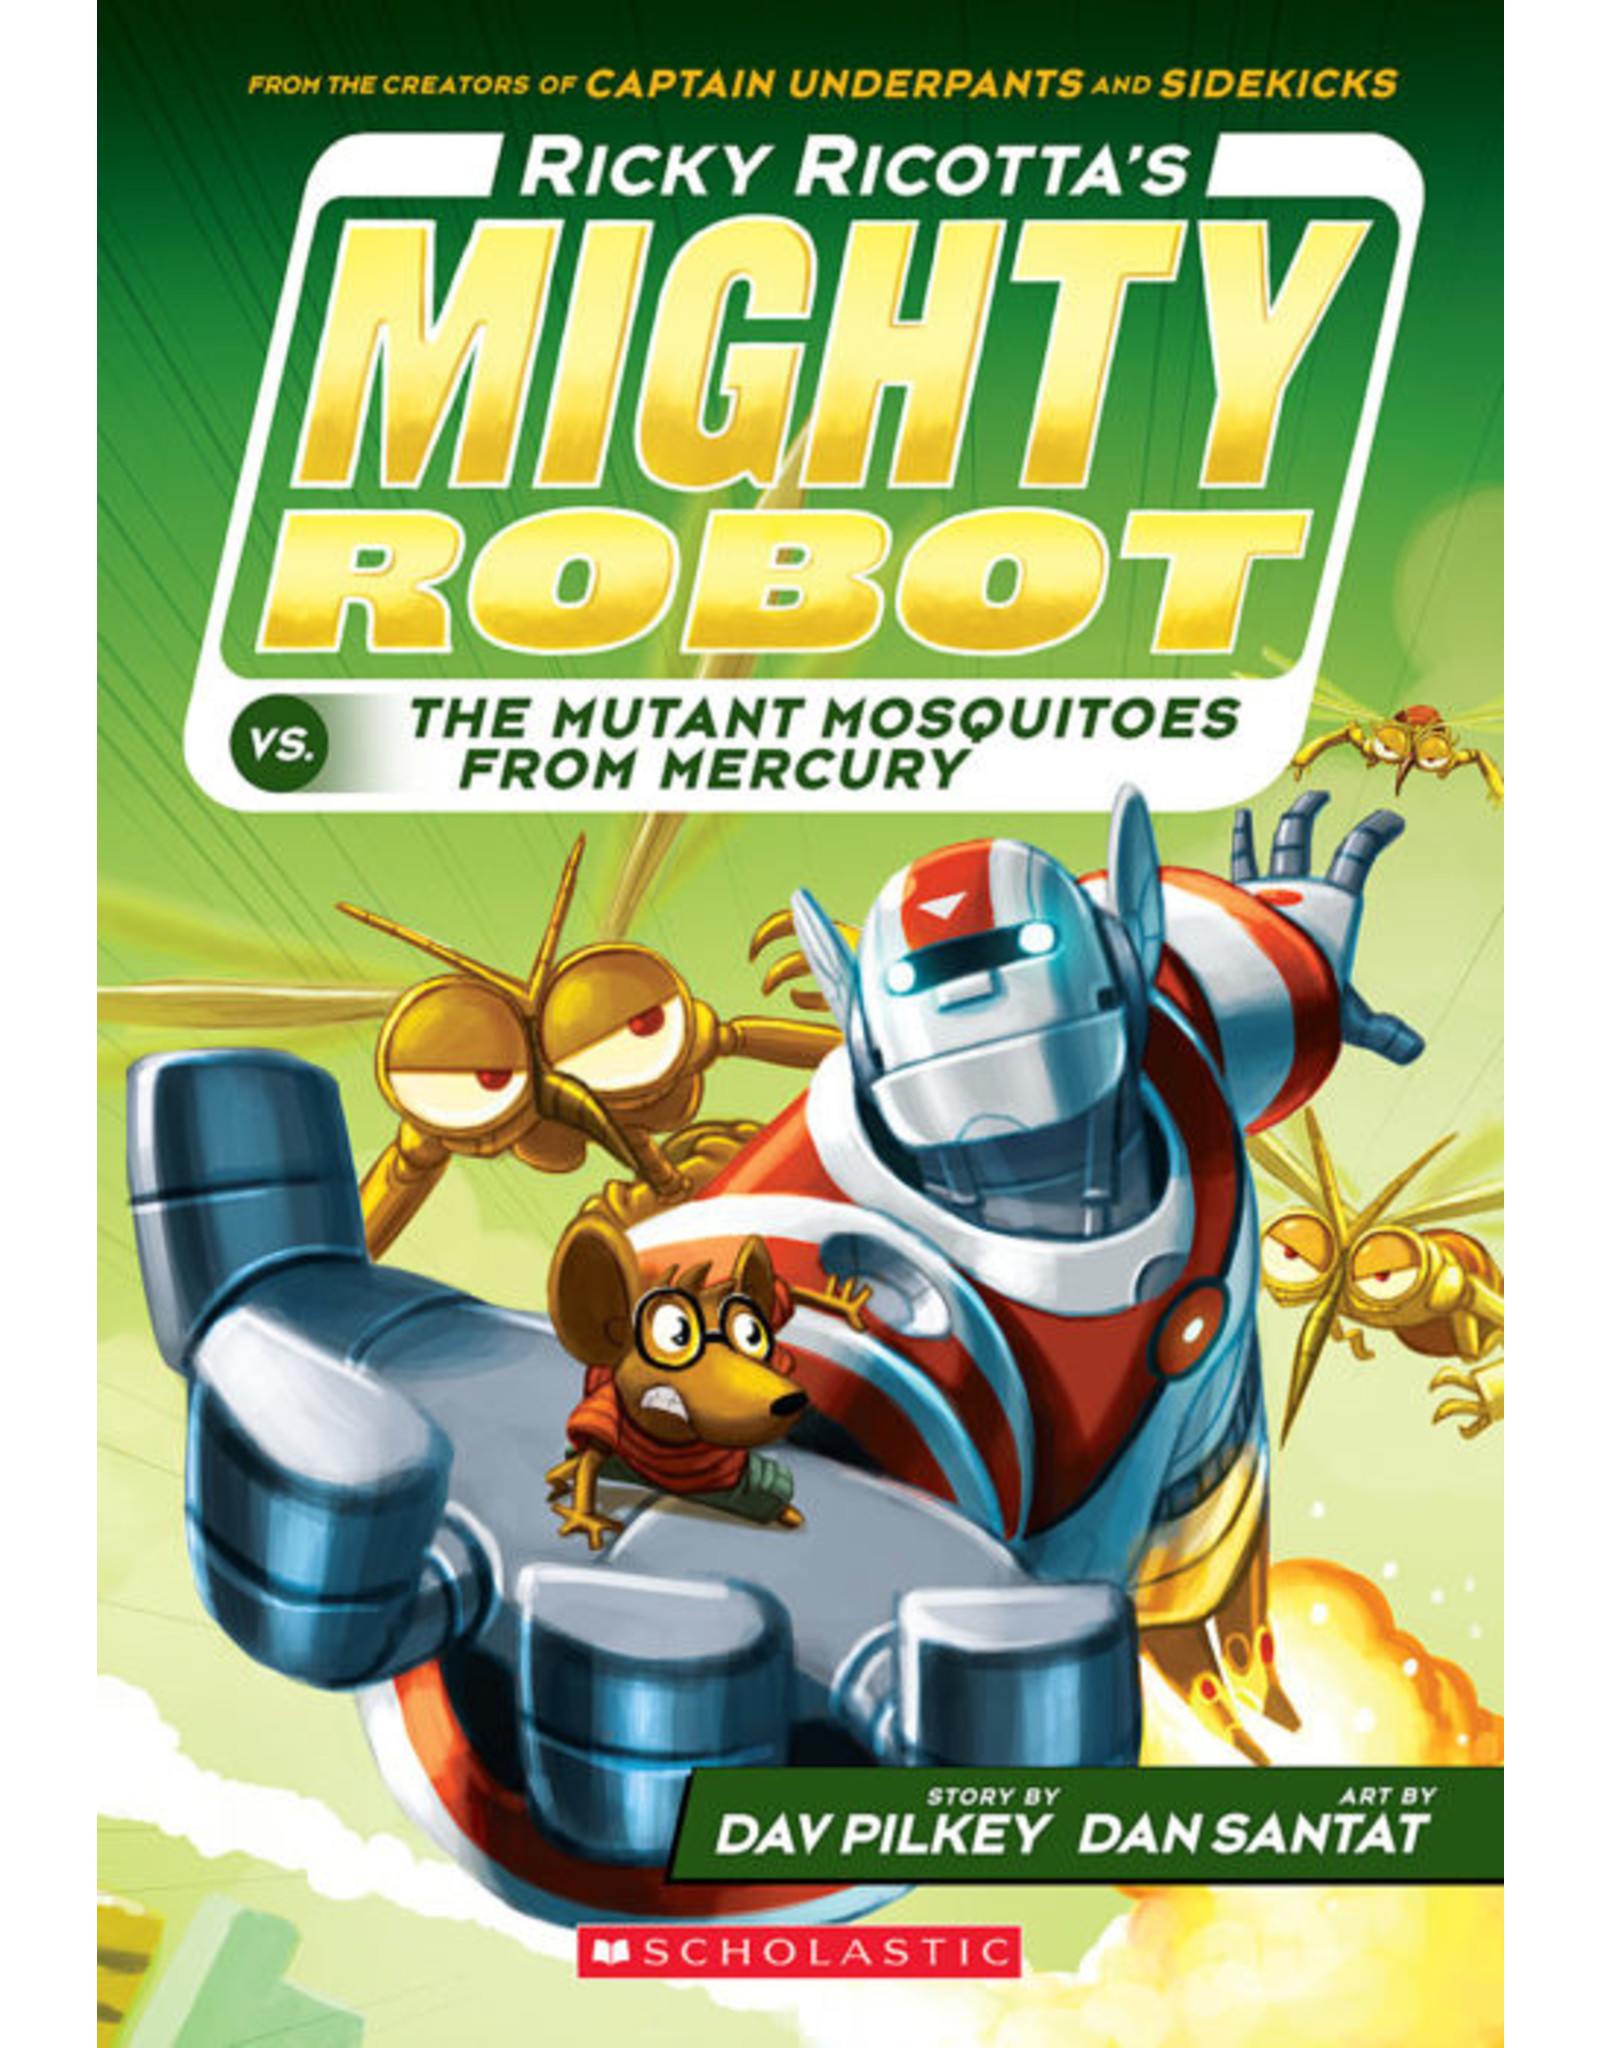 SCHOLASTIC INC. RICKY RICOTTAS MIGHTY ROBOT TP VOL 02 VS THE MUTANT MOSQUITOES FROM MERCURY